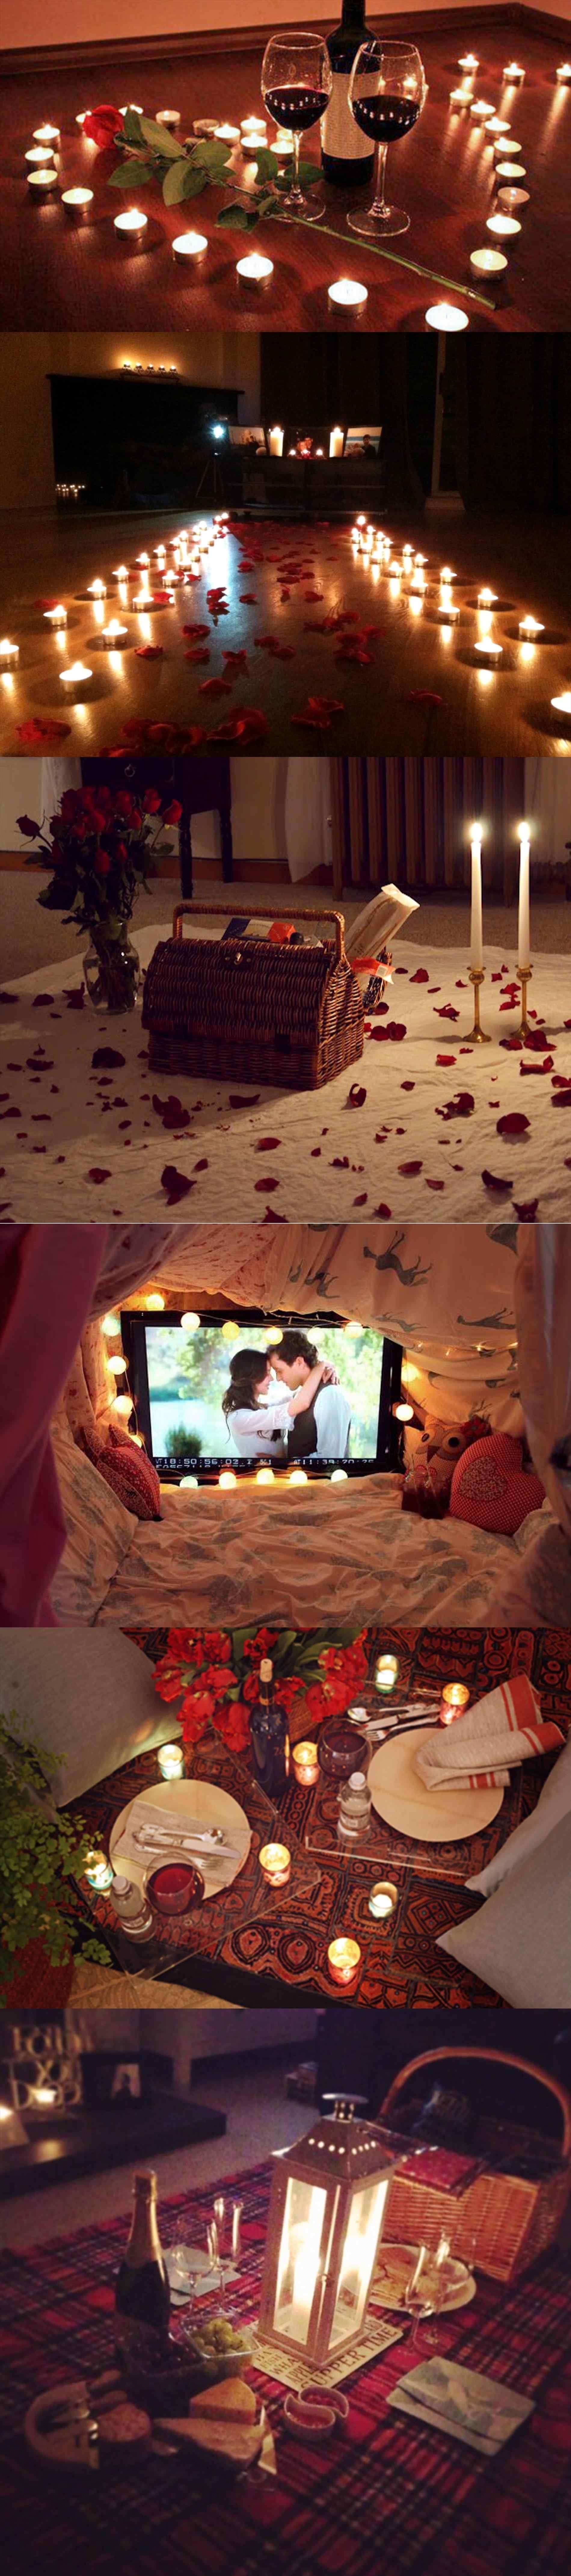 10 Most Popular Romantic Ideas For His Birthday romantic ideas for him at home on his birthday surprise for his